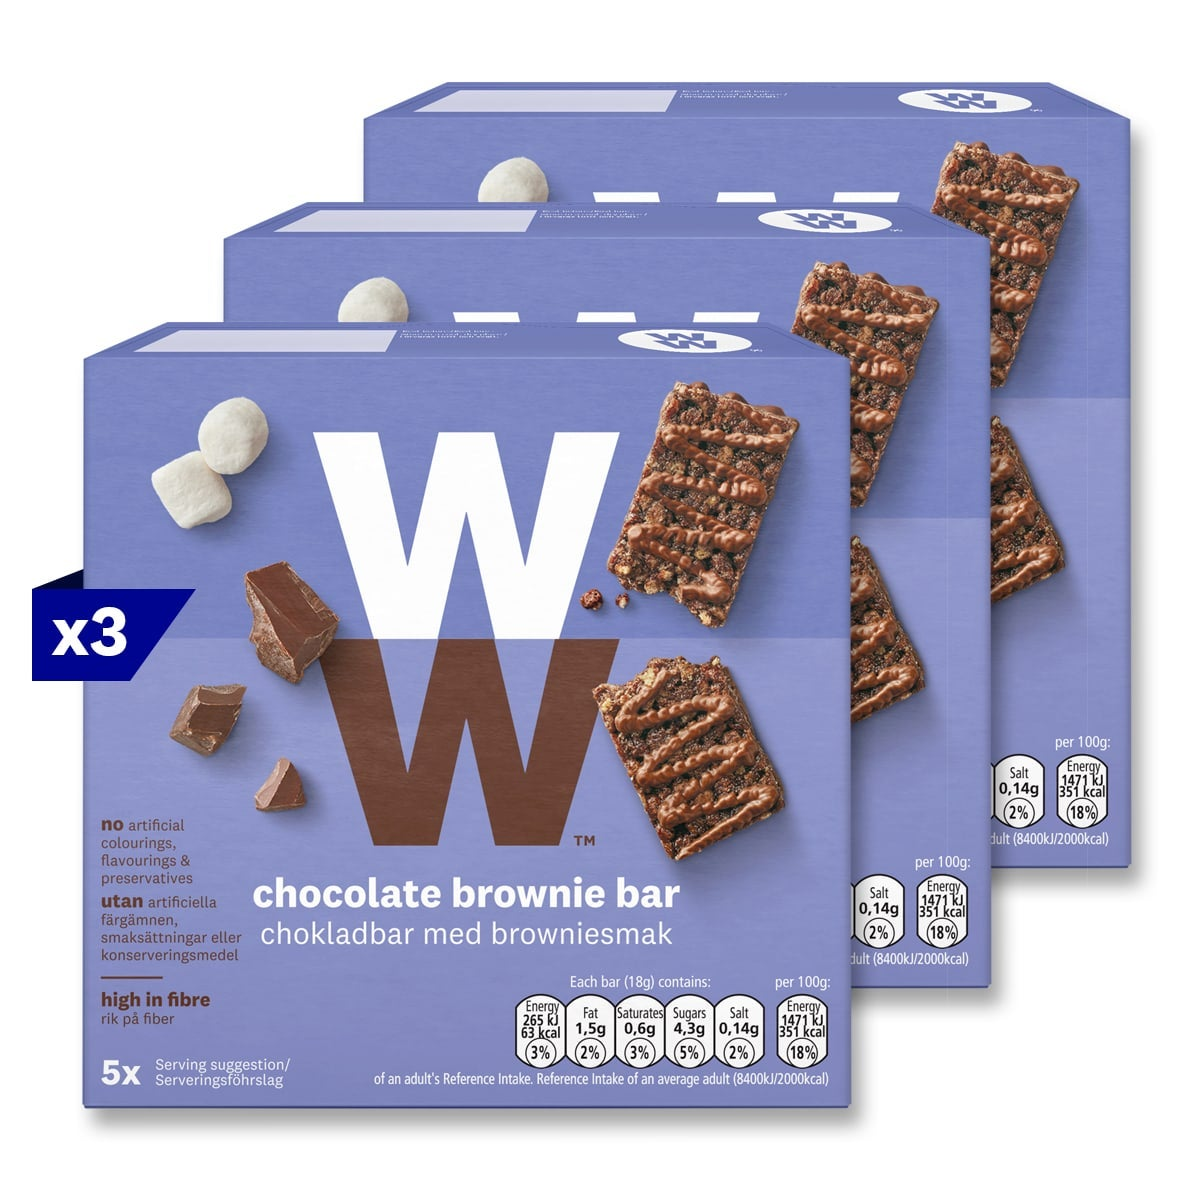 3 boxes, 5 bars in a box, WW Chocolate Brownie Bars, rich chocolate, marshmallow and crispy pieces, 2 SmartPoints values